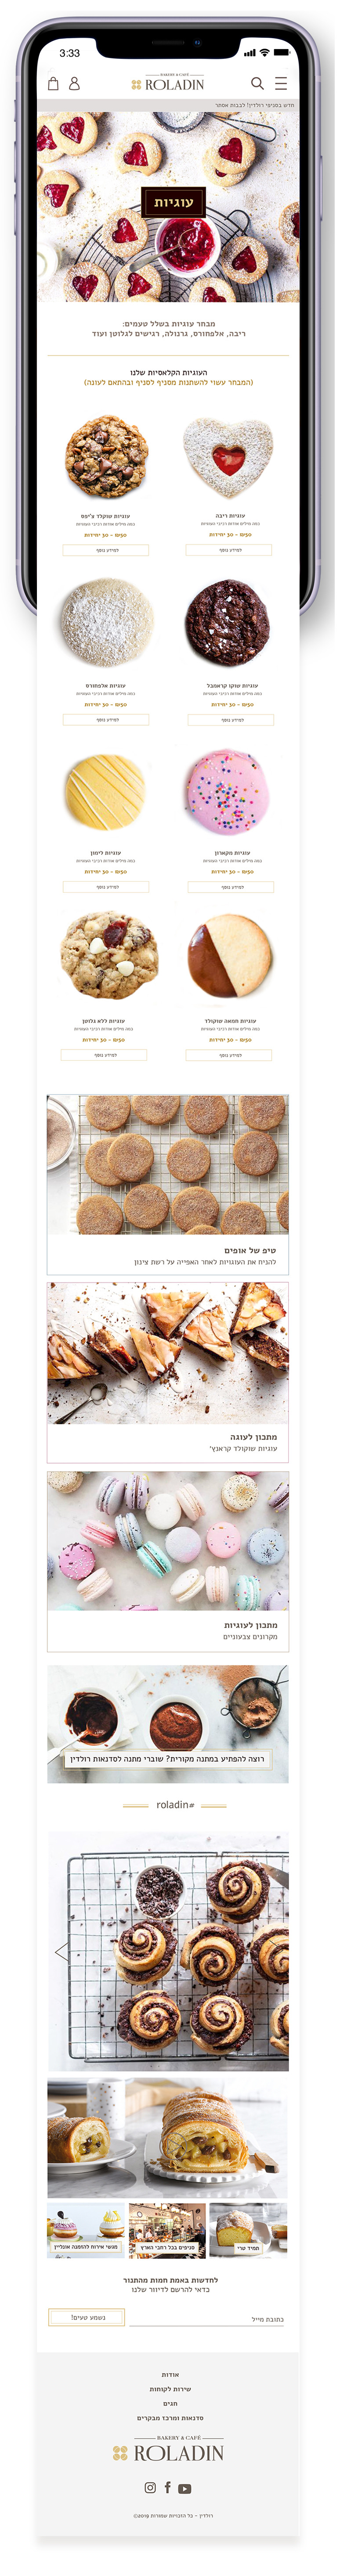 iPhone product section- coockies.jpg